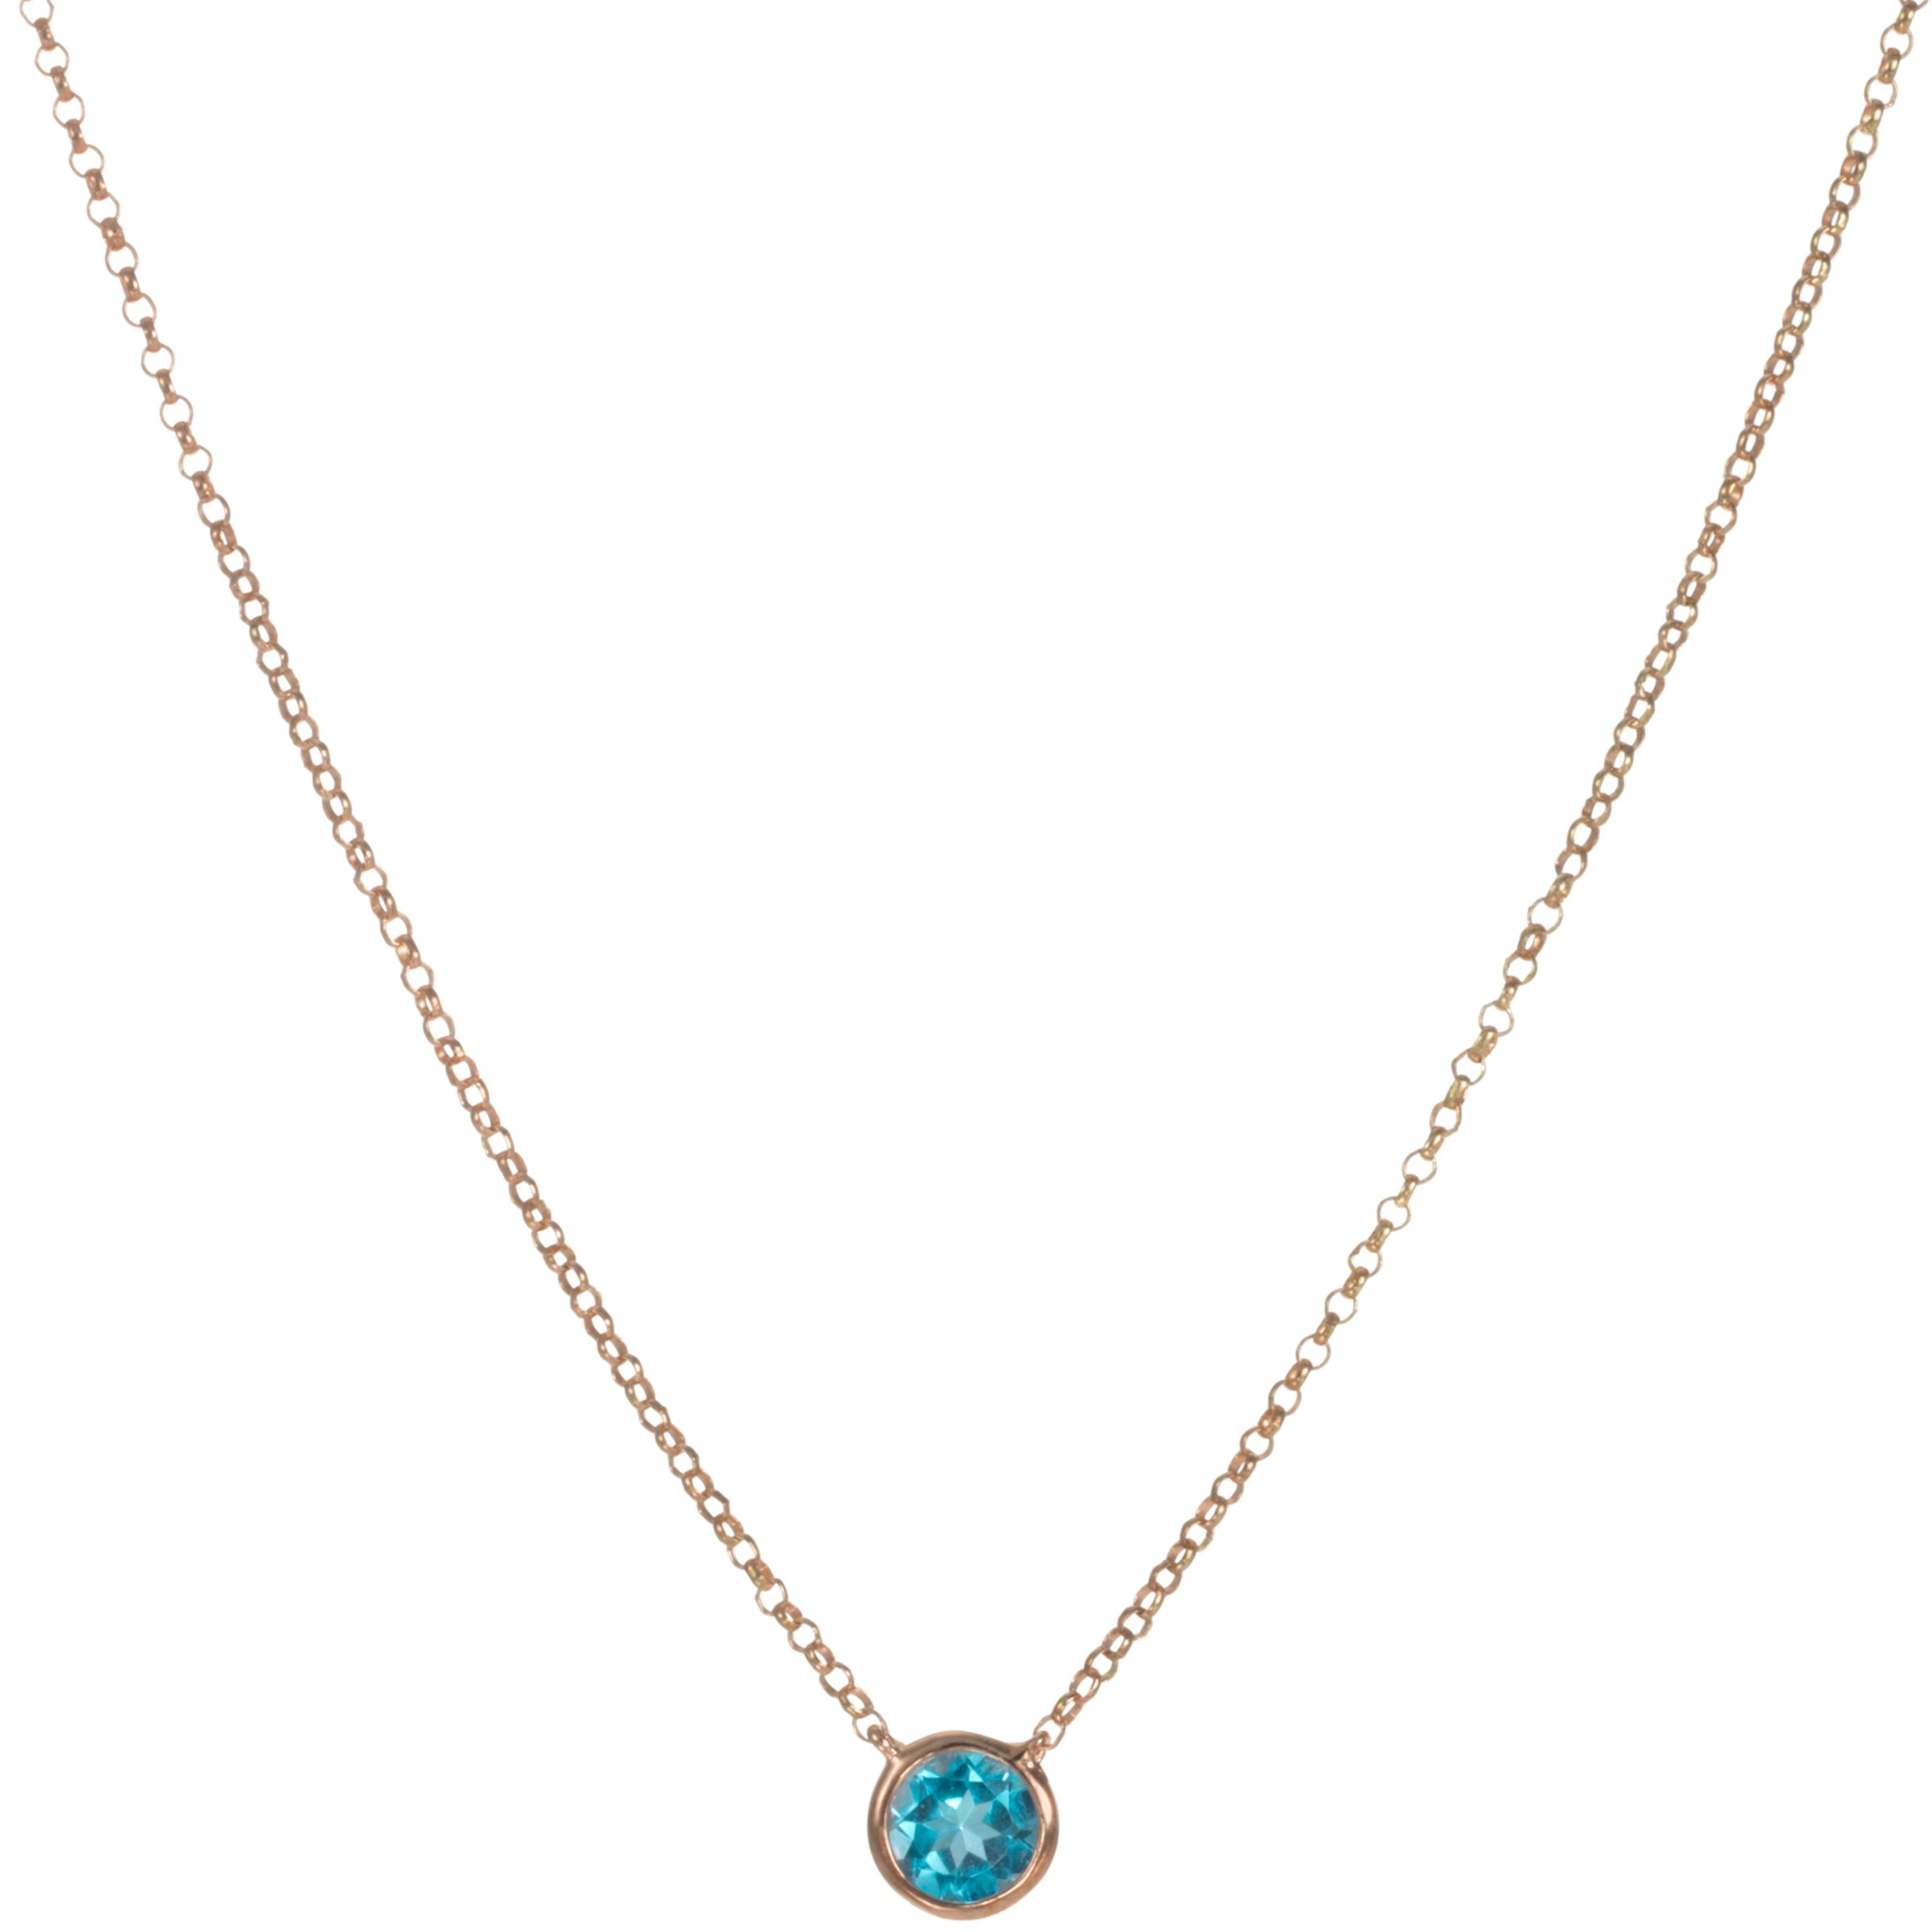 London Road 9ct Rose Gold Rain Drop Blue Topaz Pendant Necklace